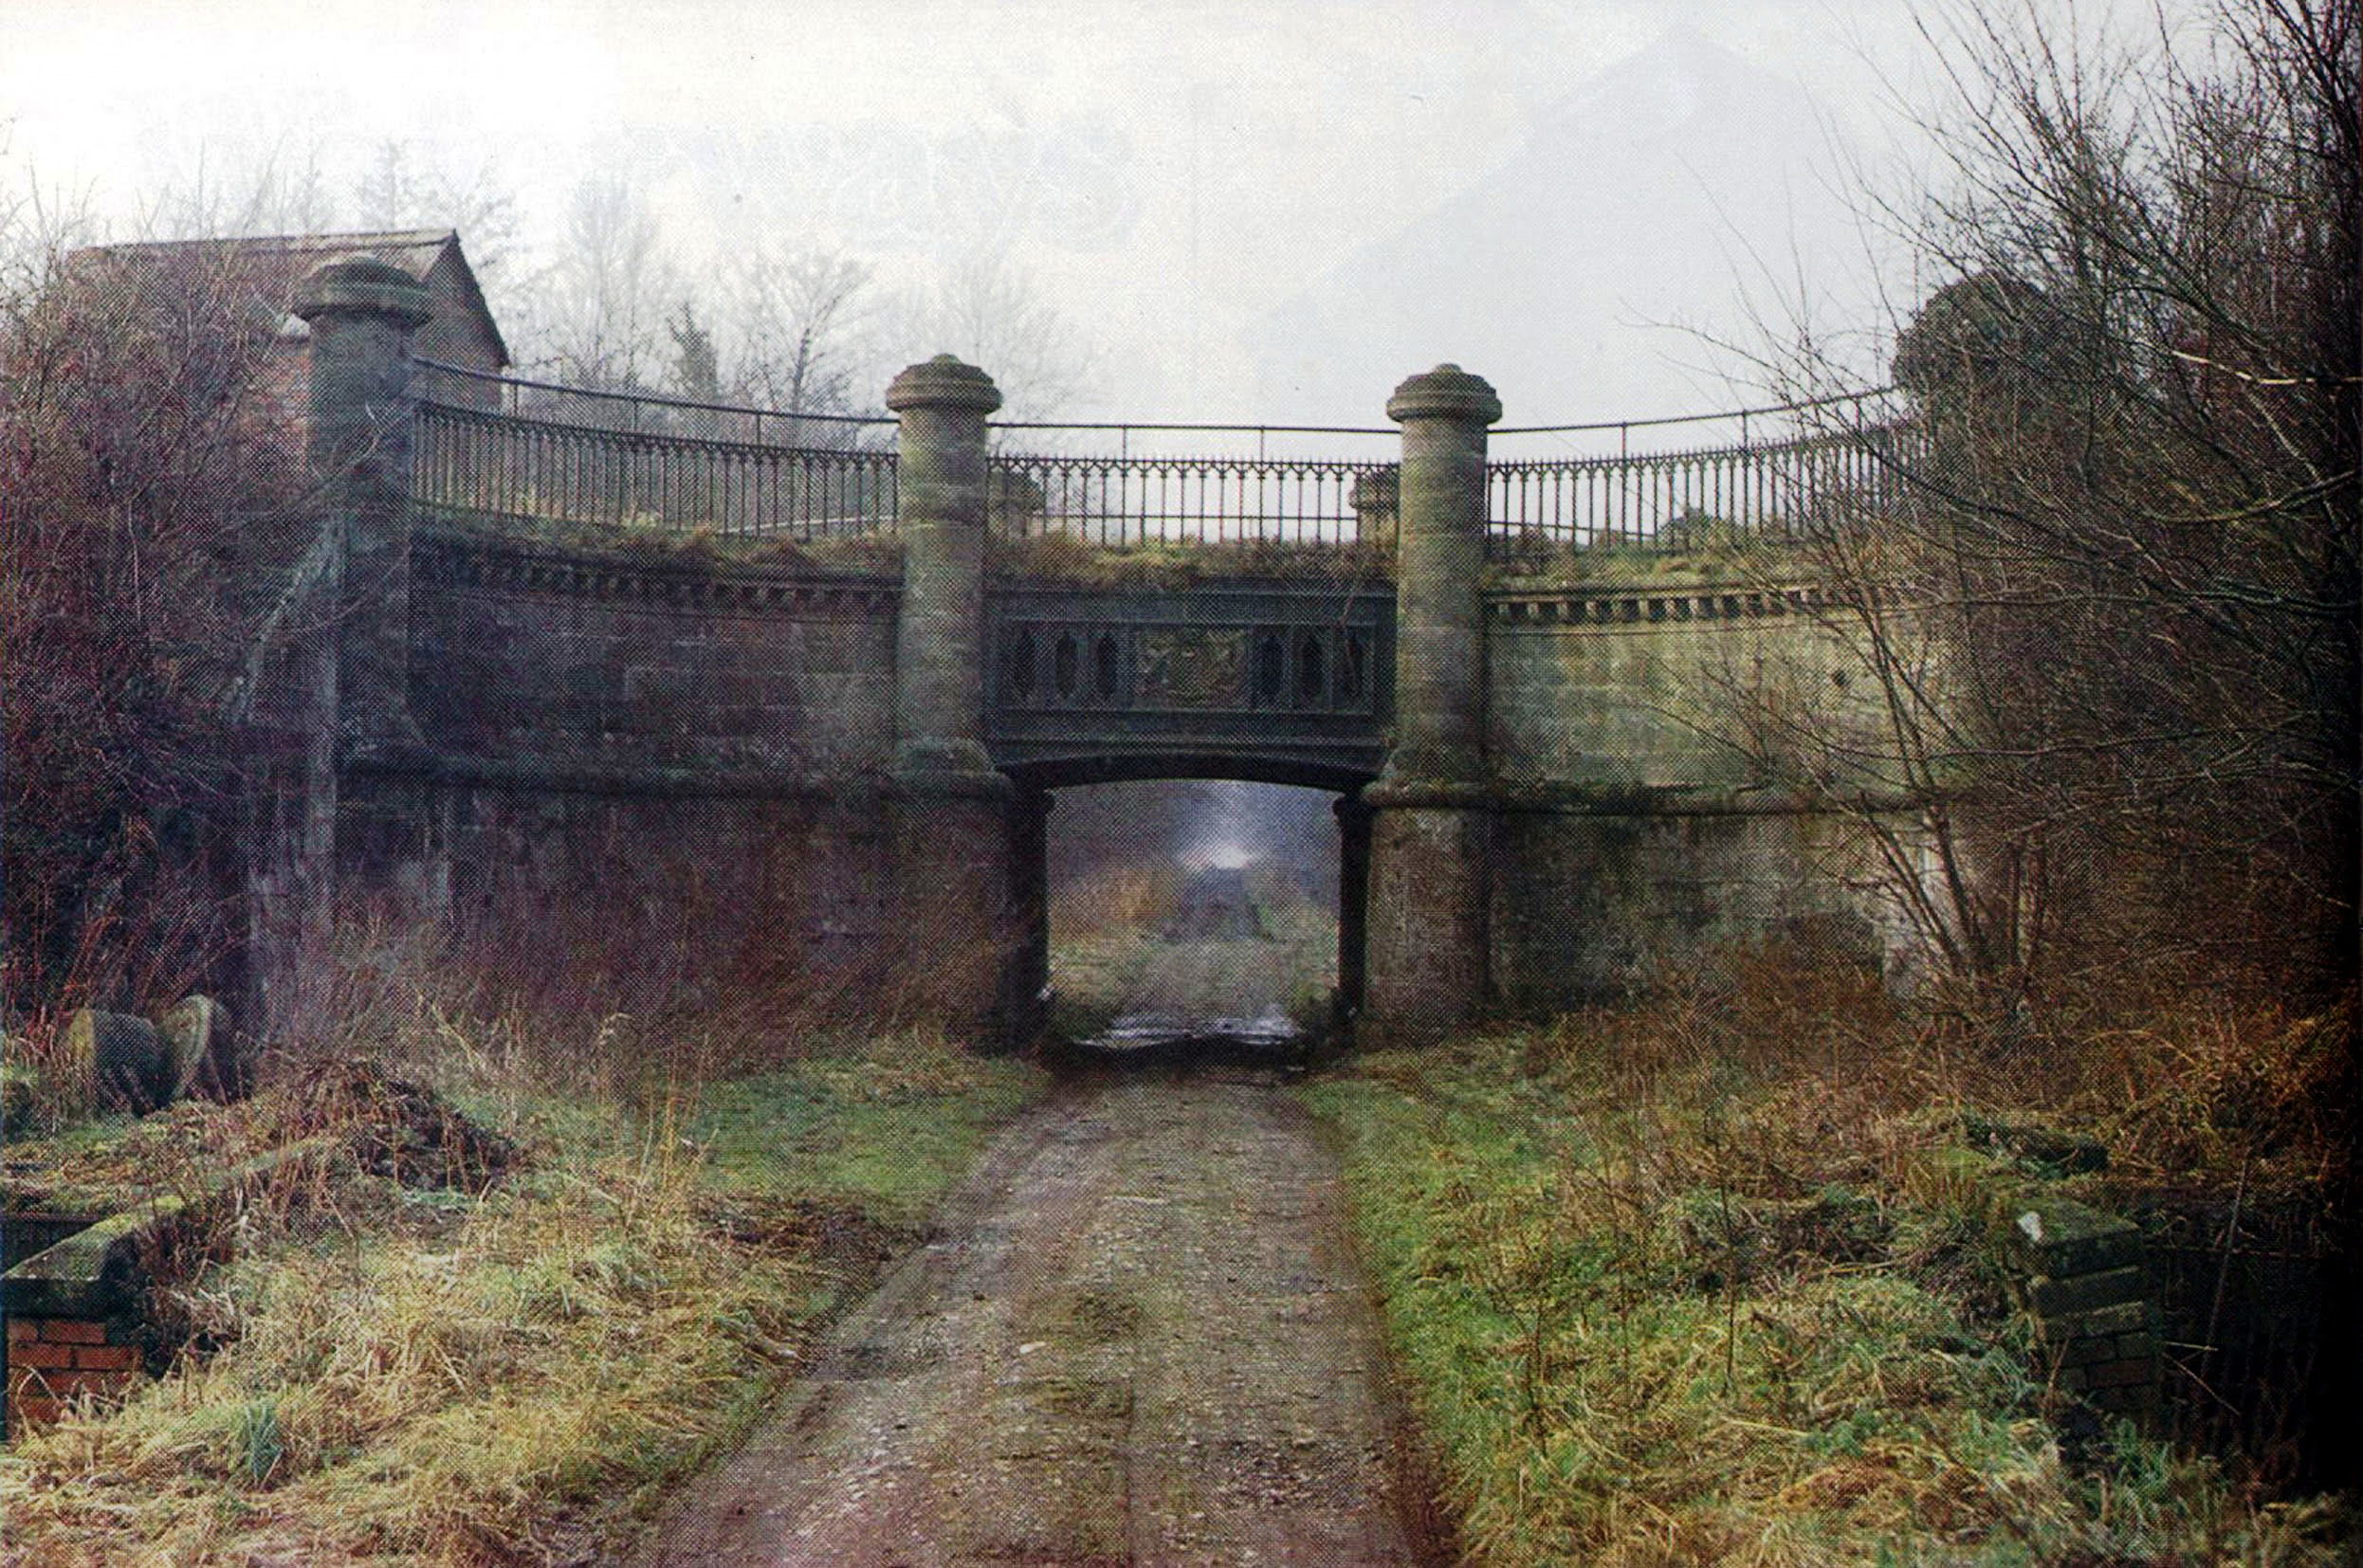 The-Humber-Arm-was-located-just-to-the-south-of-Thomas-Telfords-Aqueduct-on-Kynnersley-Drive